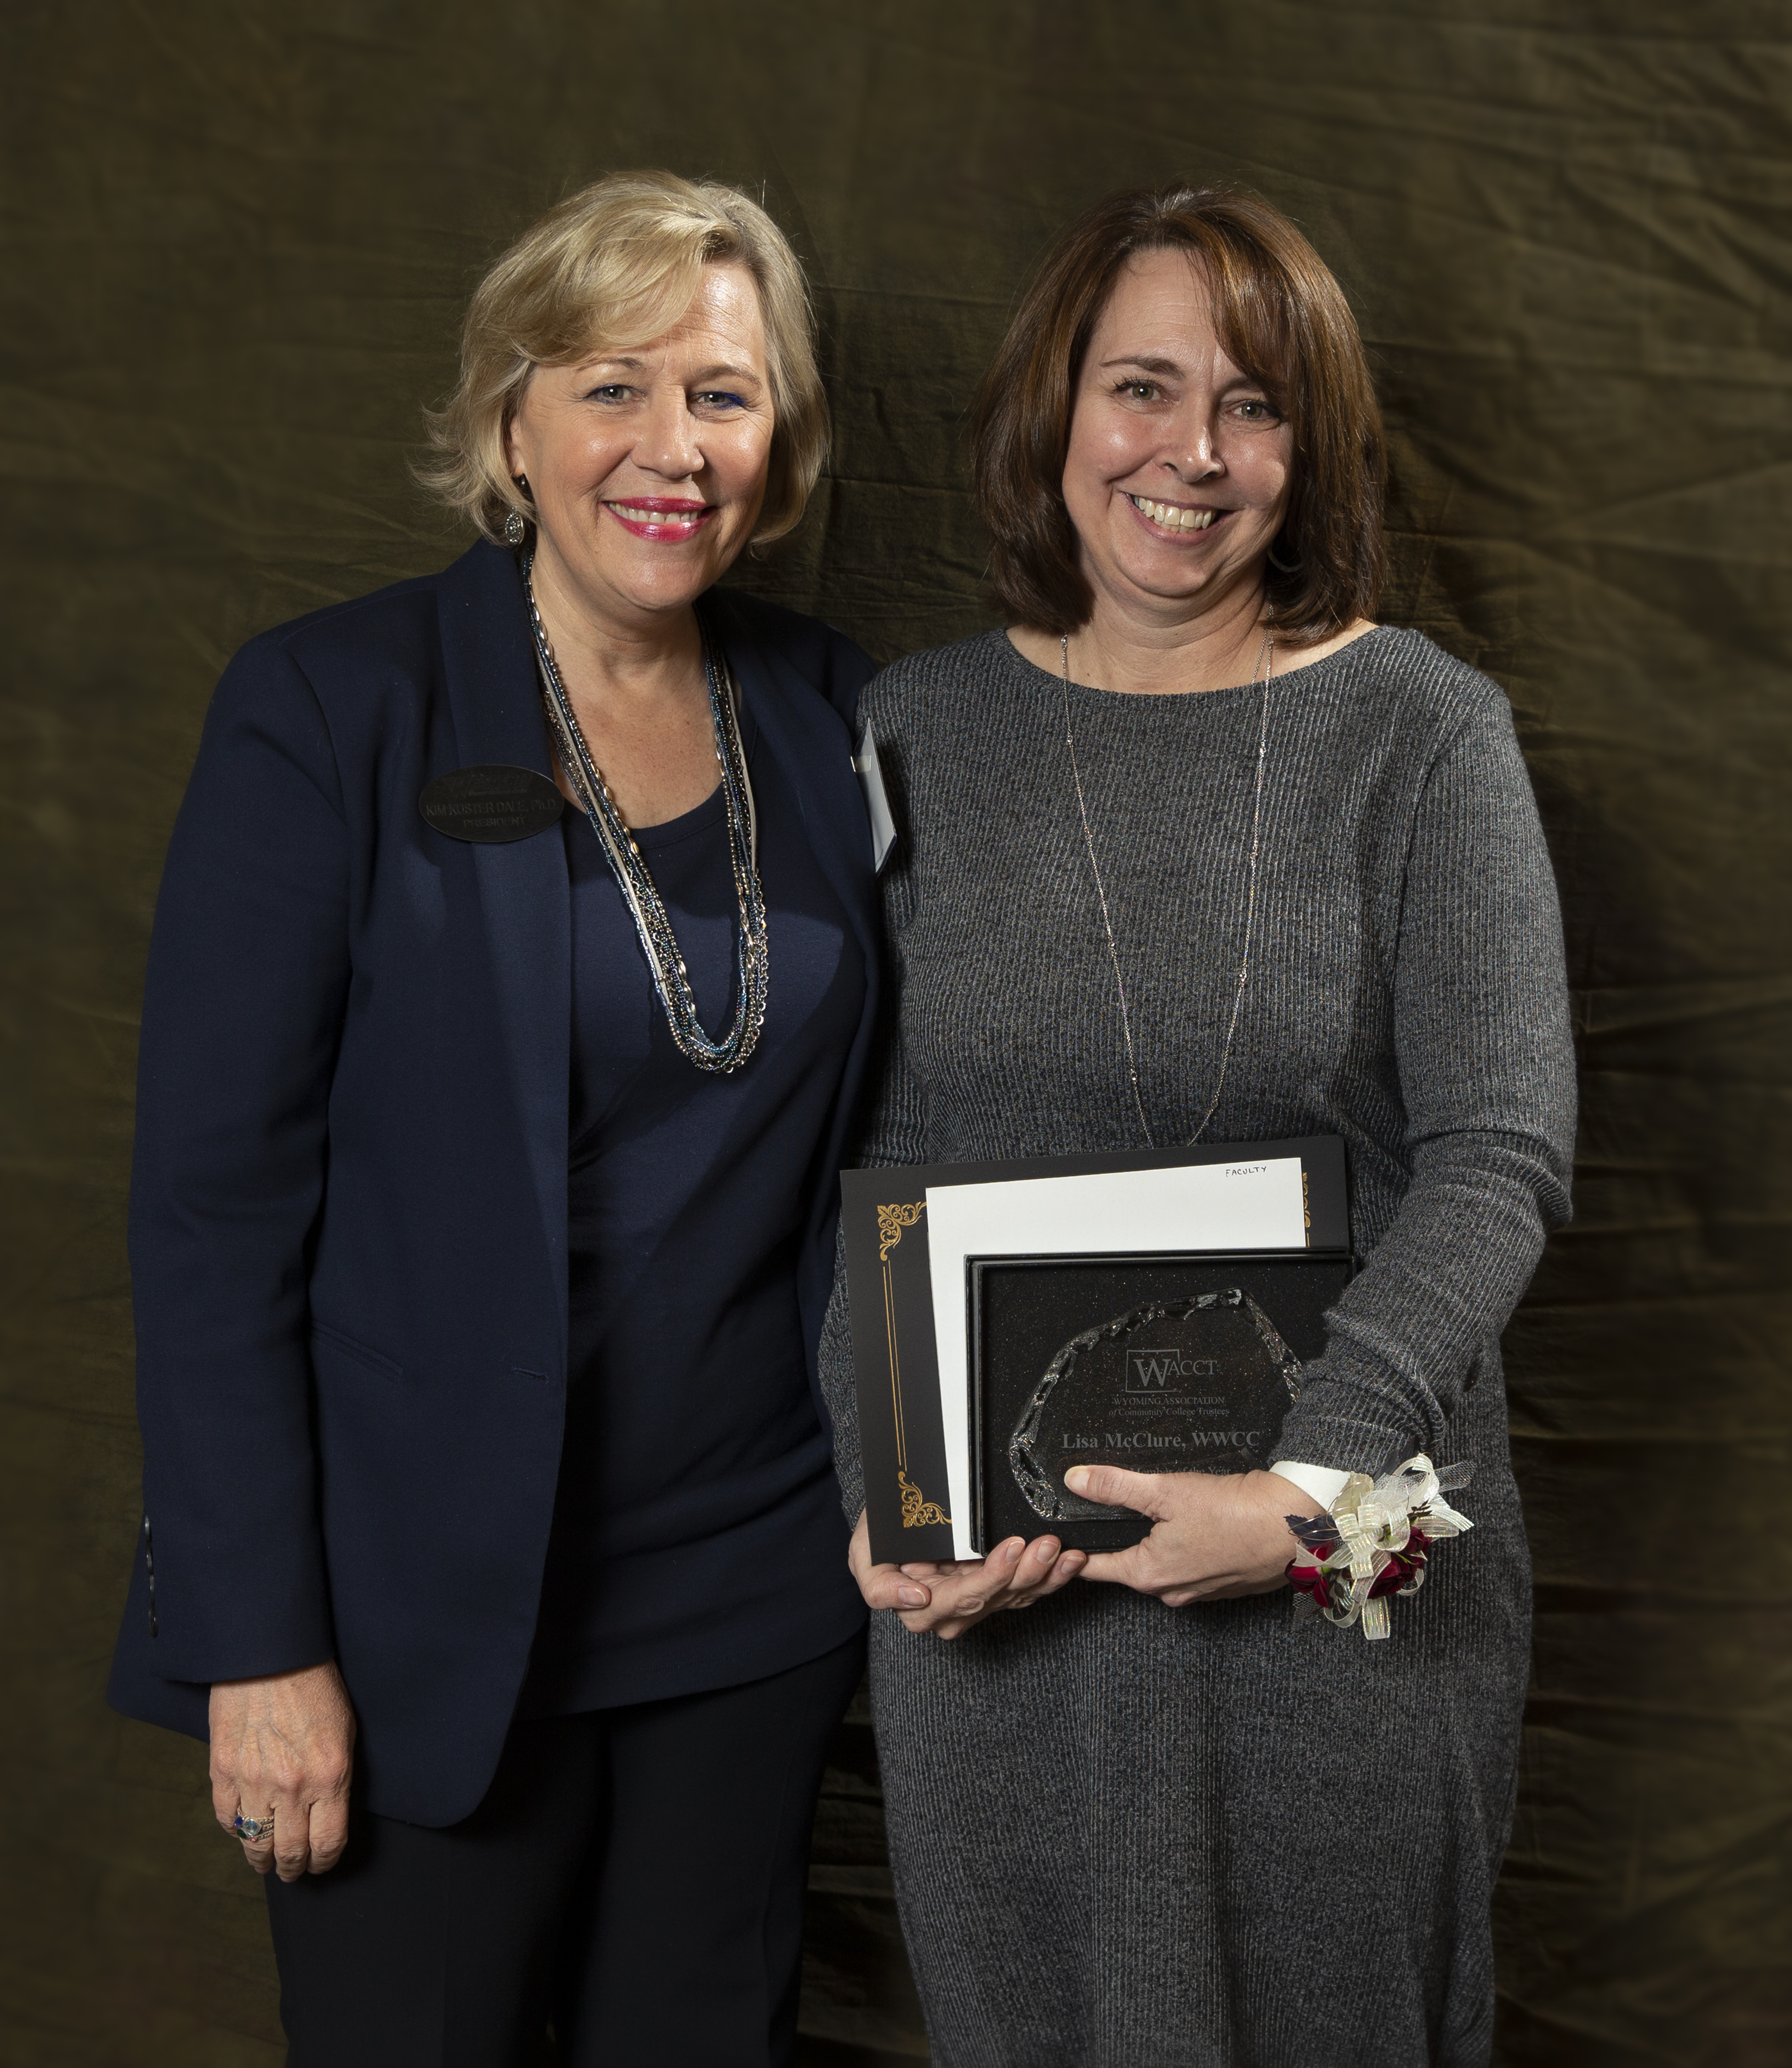 Dr. Kim Dale, President of Western Wyoming Community College and Lisa McClure, Assistant Professor of Business Information Systems pictured at the 2020 WACCT Award Ceremony